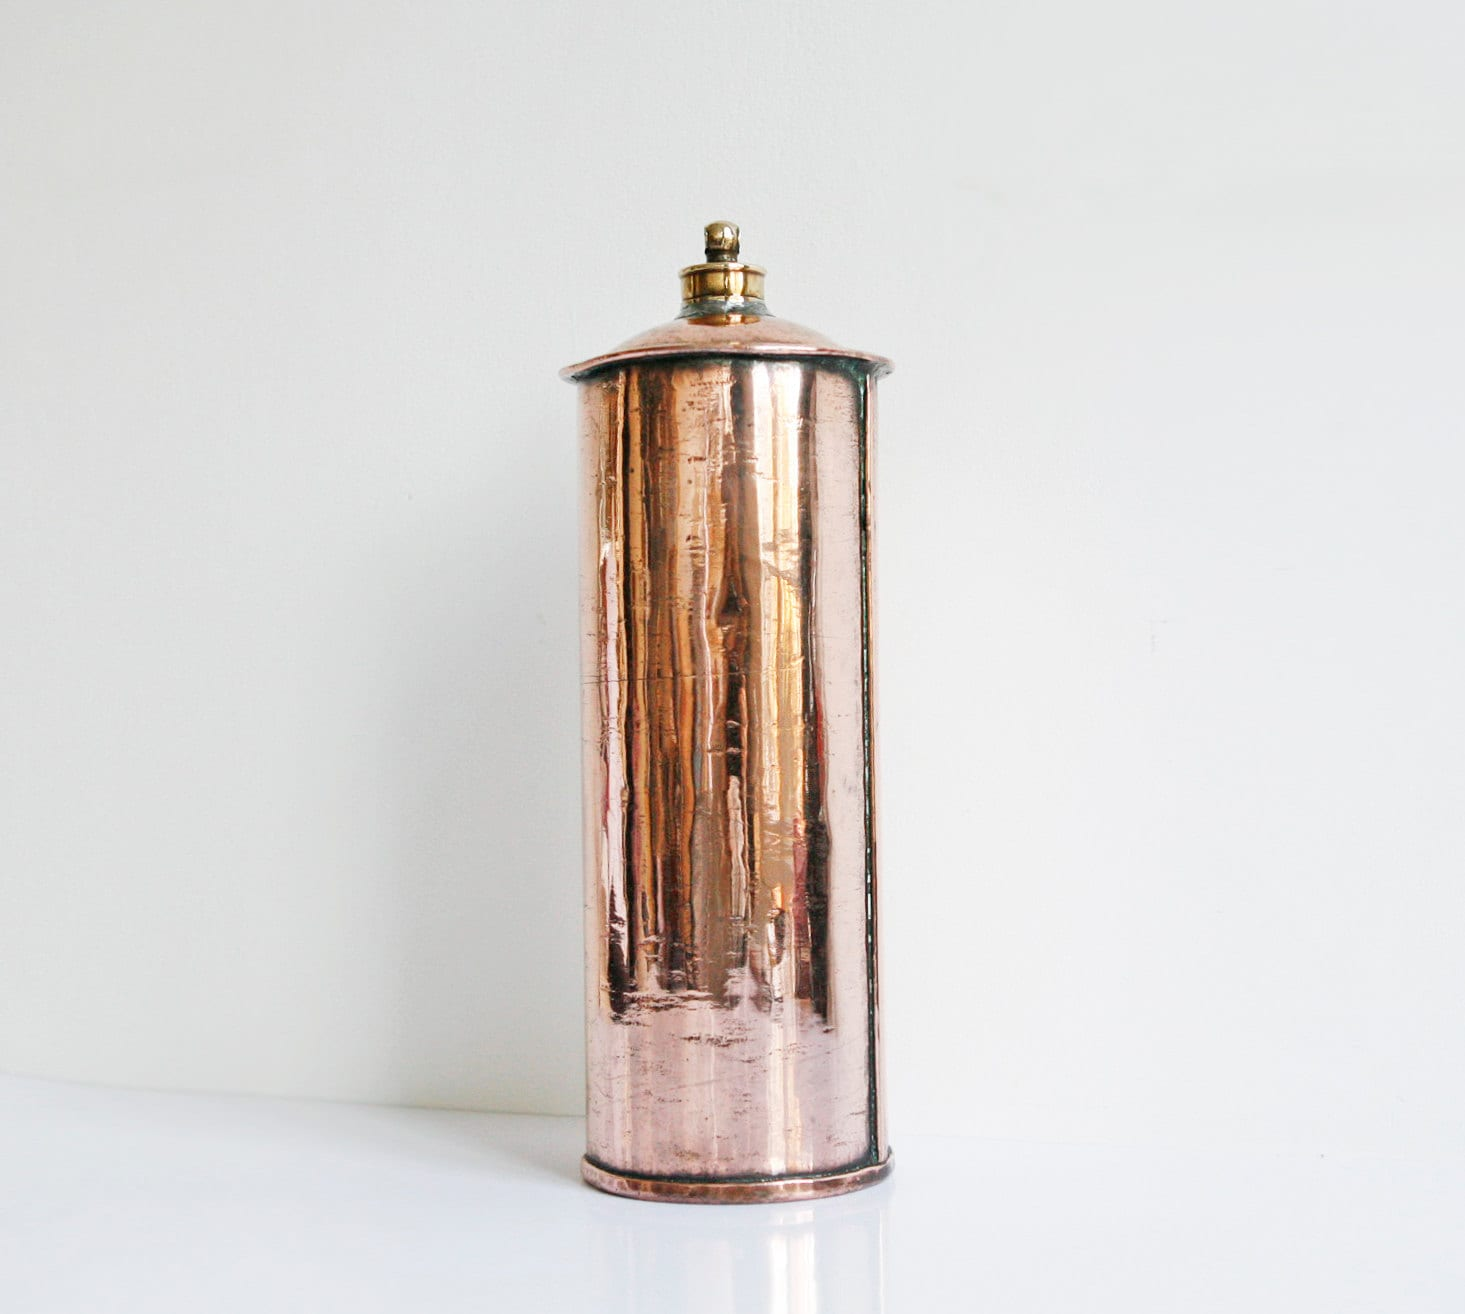 Copper hot water bottle antique french decor french country for Decor water bottle